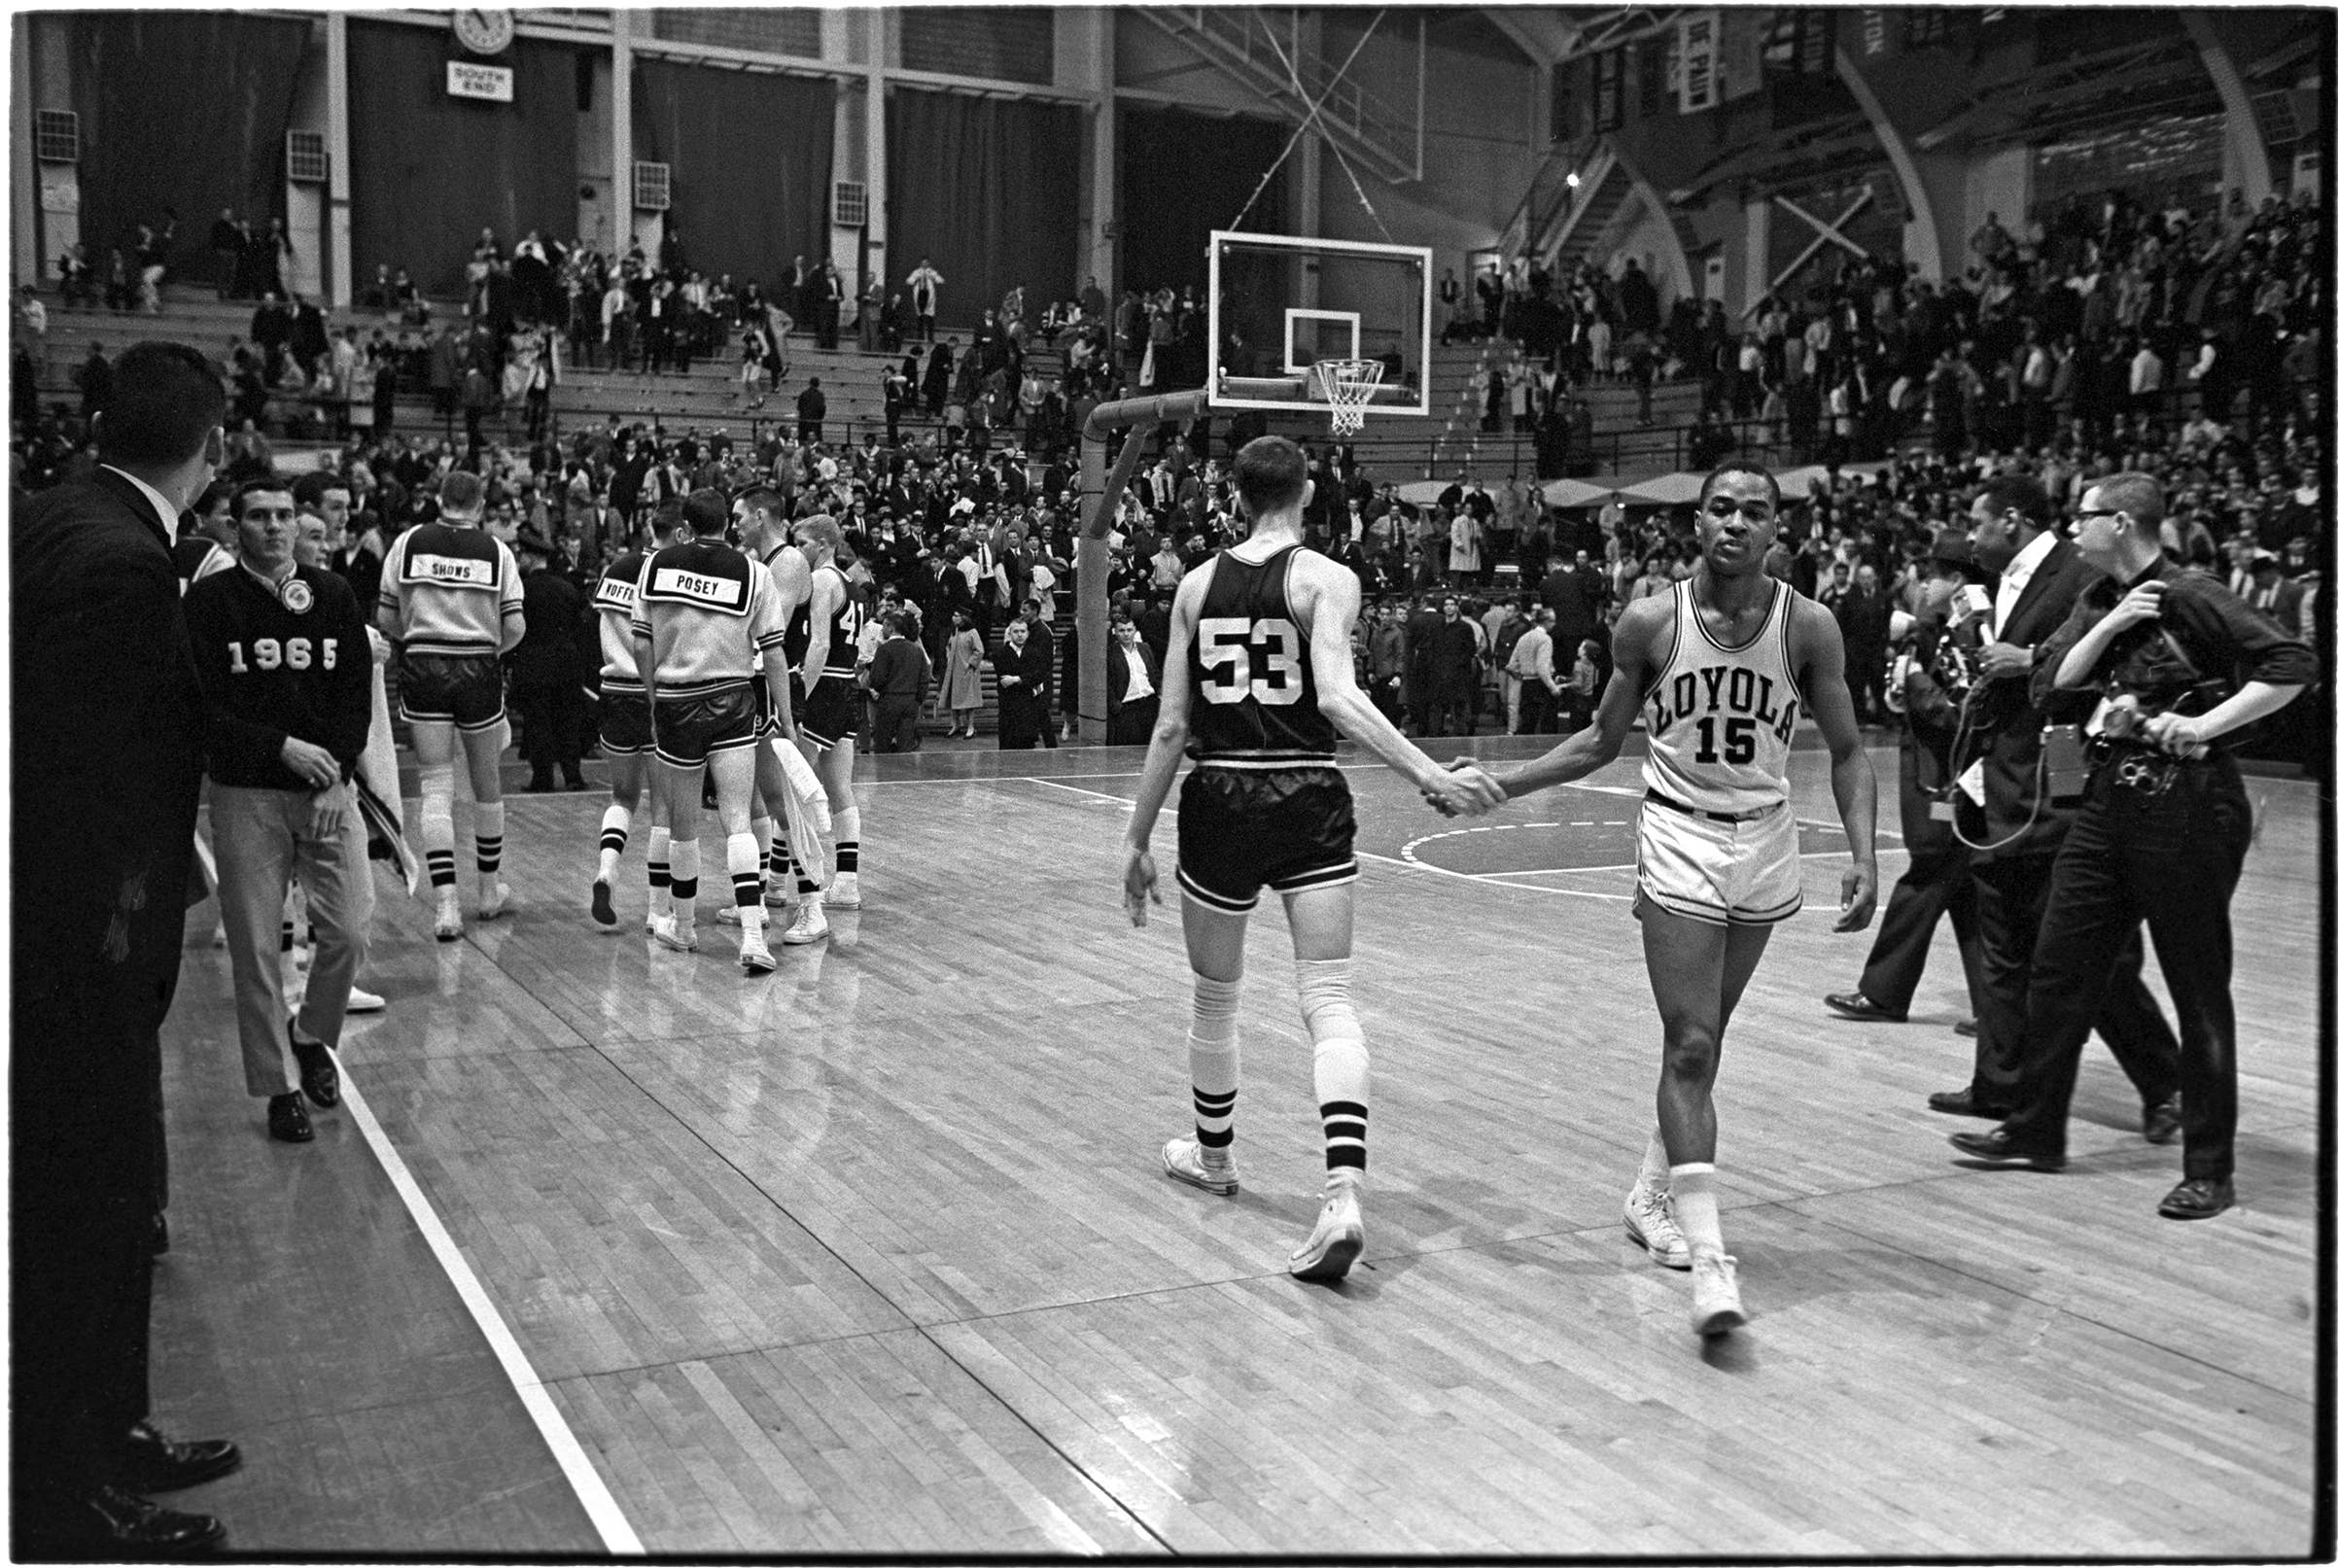 Loyola defeated Mississippi State in the Mideast Regional first round game 61-51 at Jenison Field House in East Lansing, Mich., on March 15, 1963.